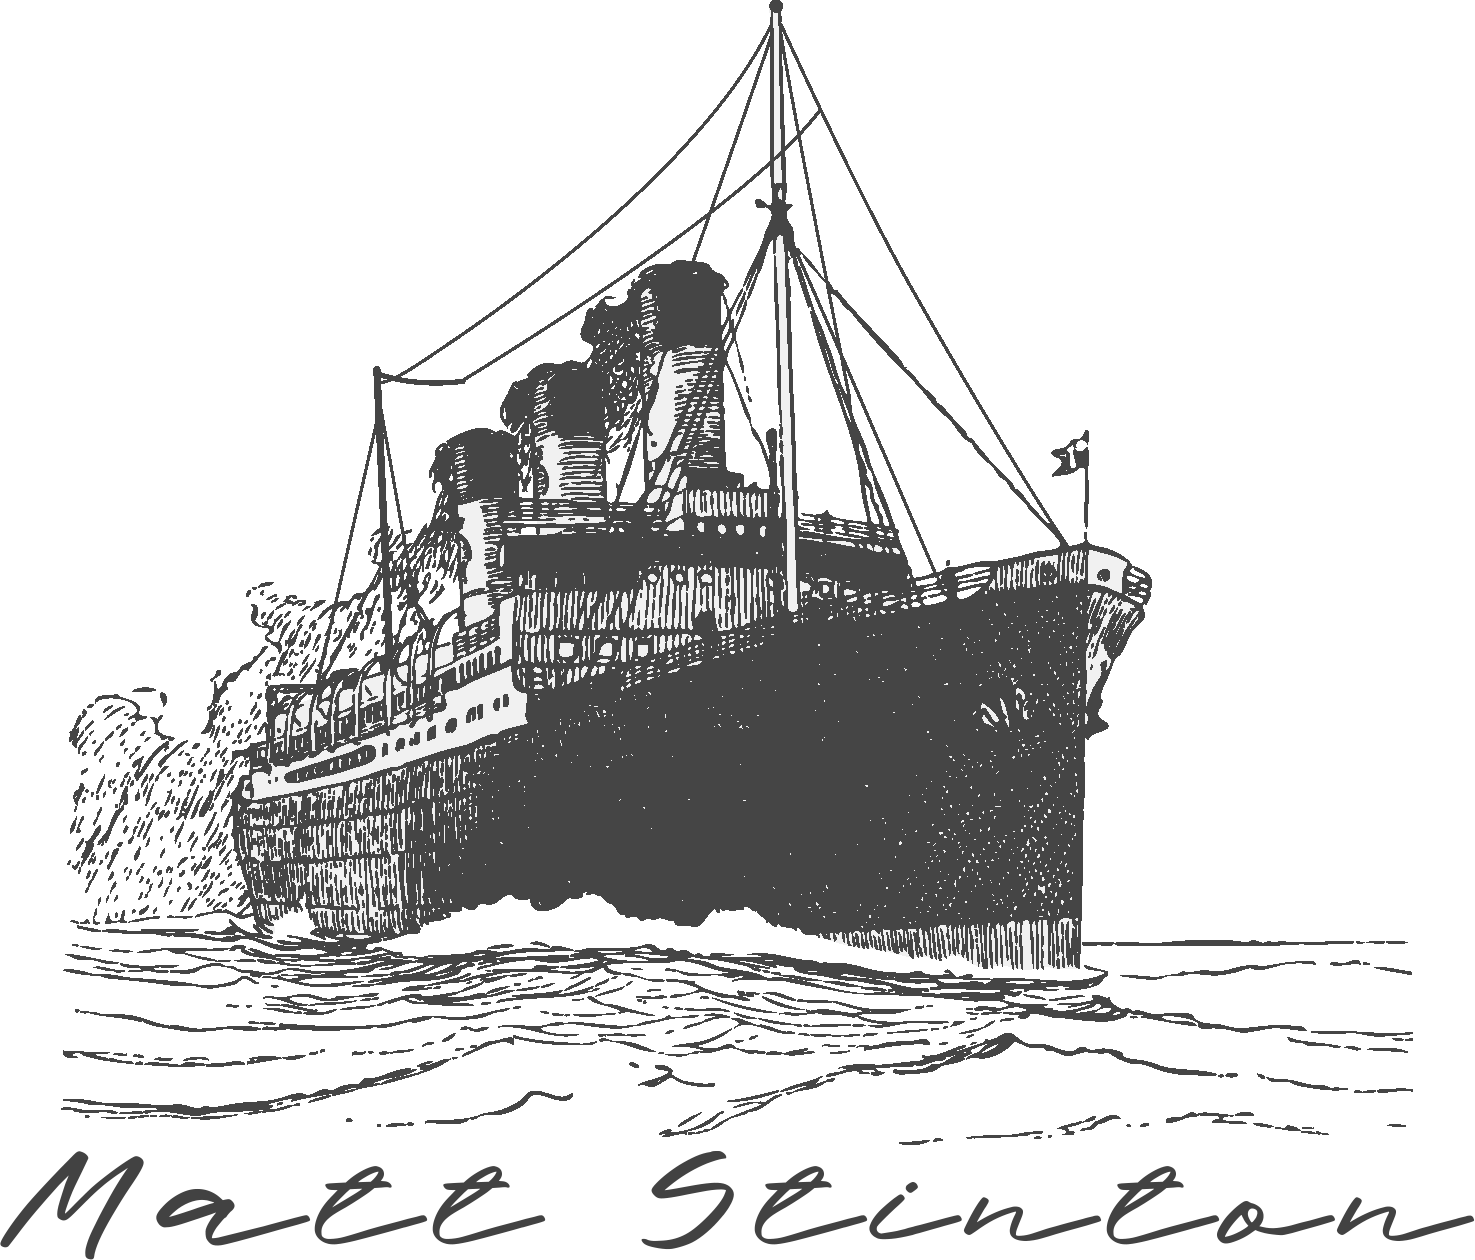 Matt Stinton